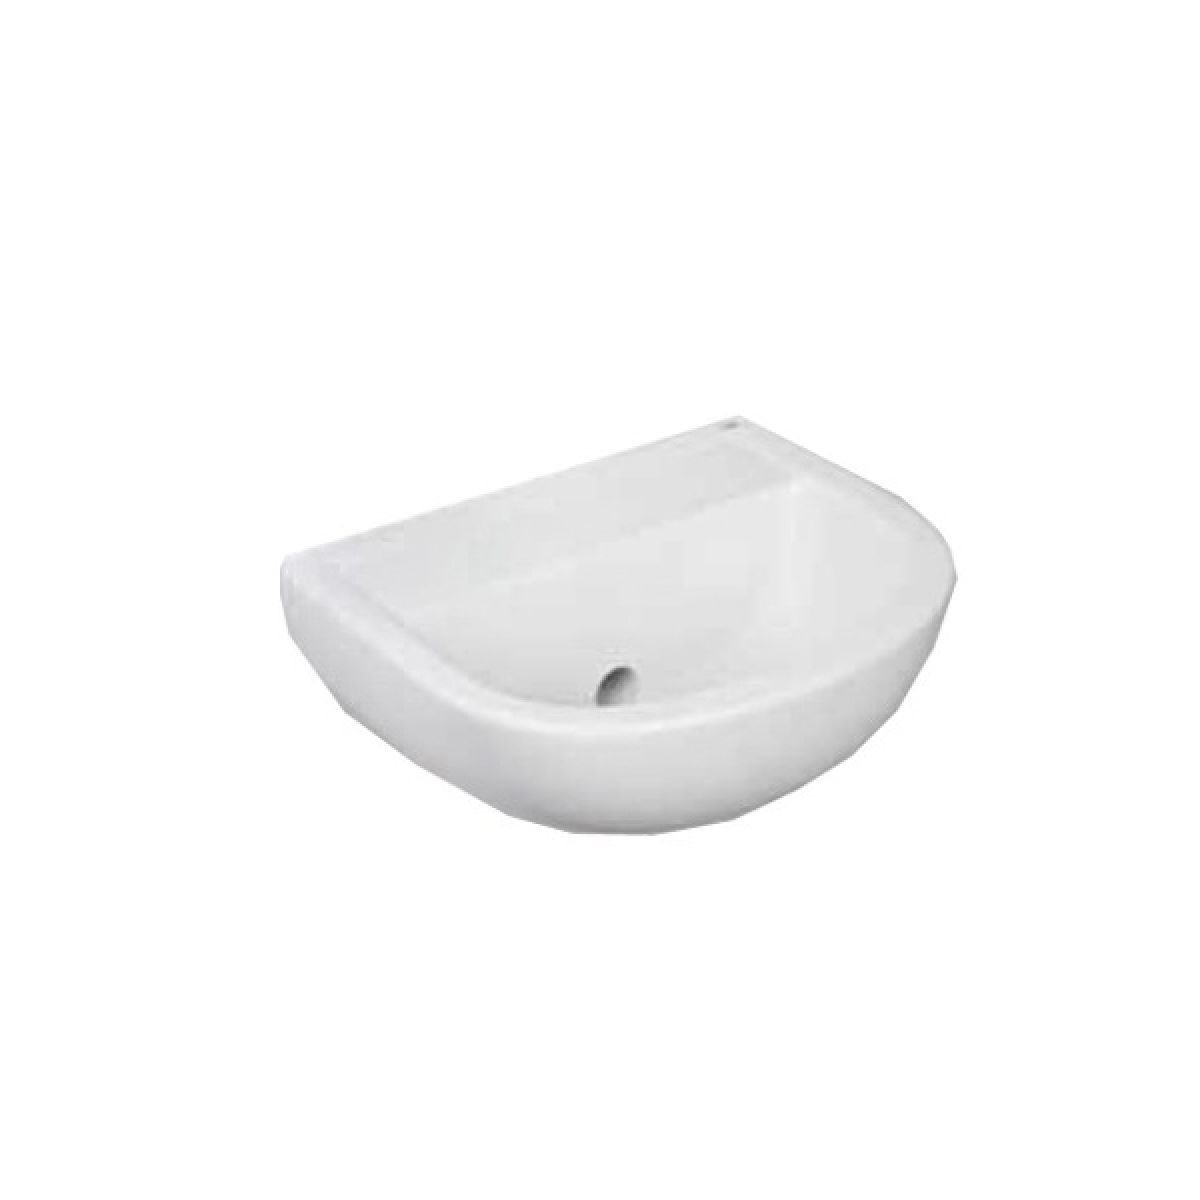 RAK Compact Special Needs Horizontal Outlet 0 Tap Hole Basin 380mm